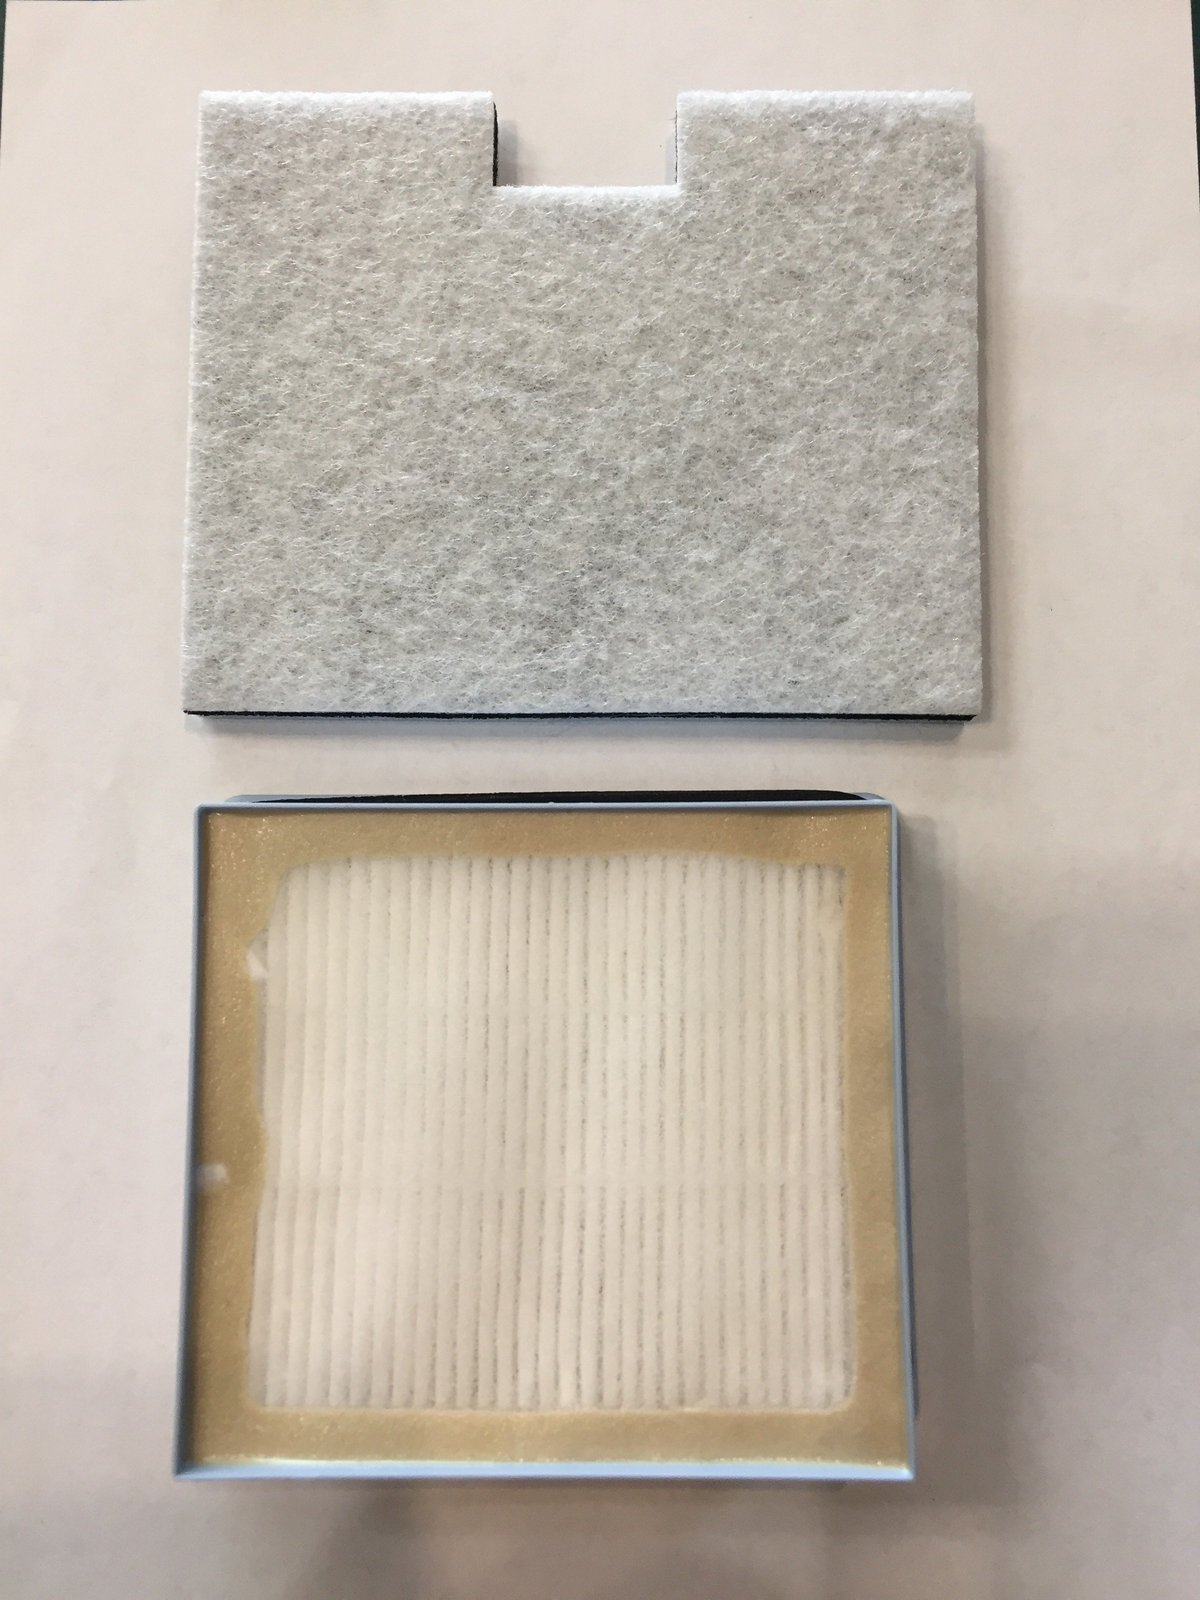 Riccar Impeccable Hepa Filters - $32.95